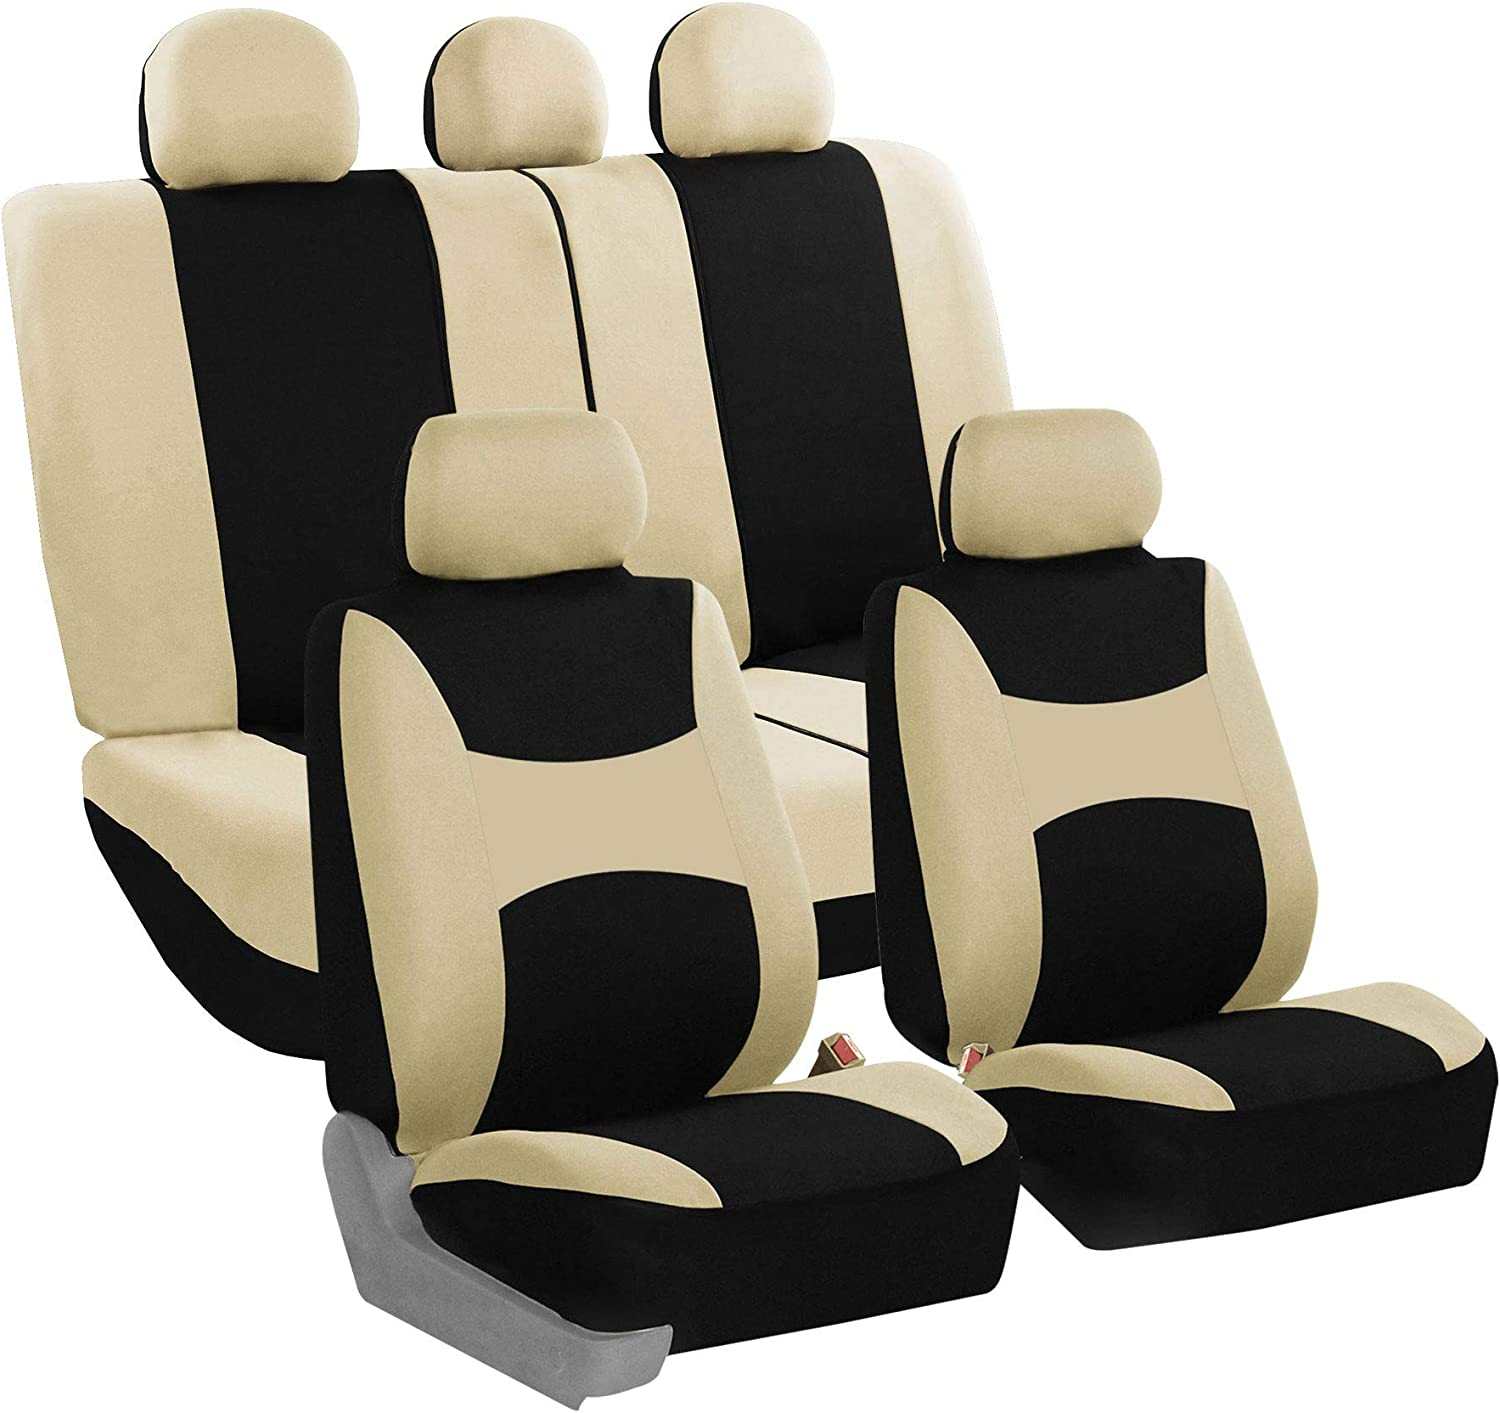 FH Group FB030BEIGEBLACK115 full seat cover (Side Airbag Compatible with Split Bench Beige/Black)